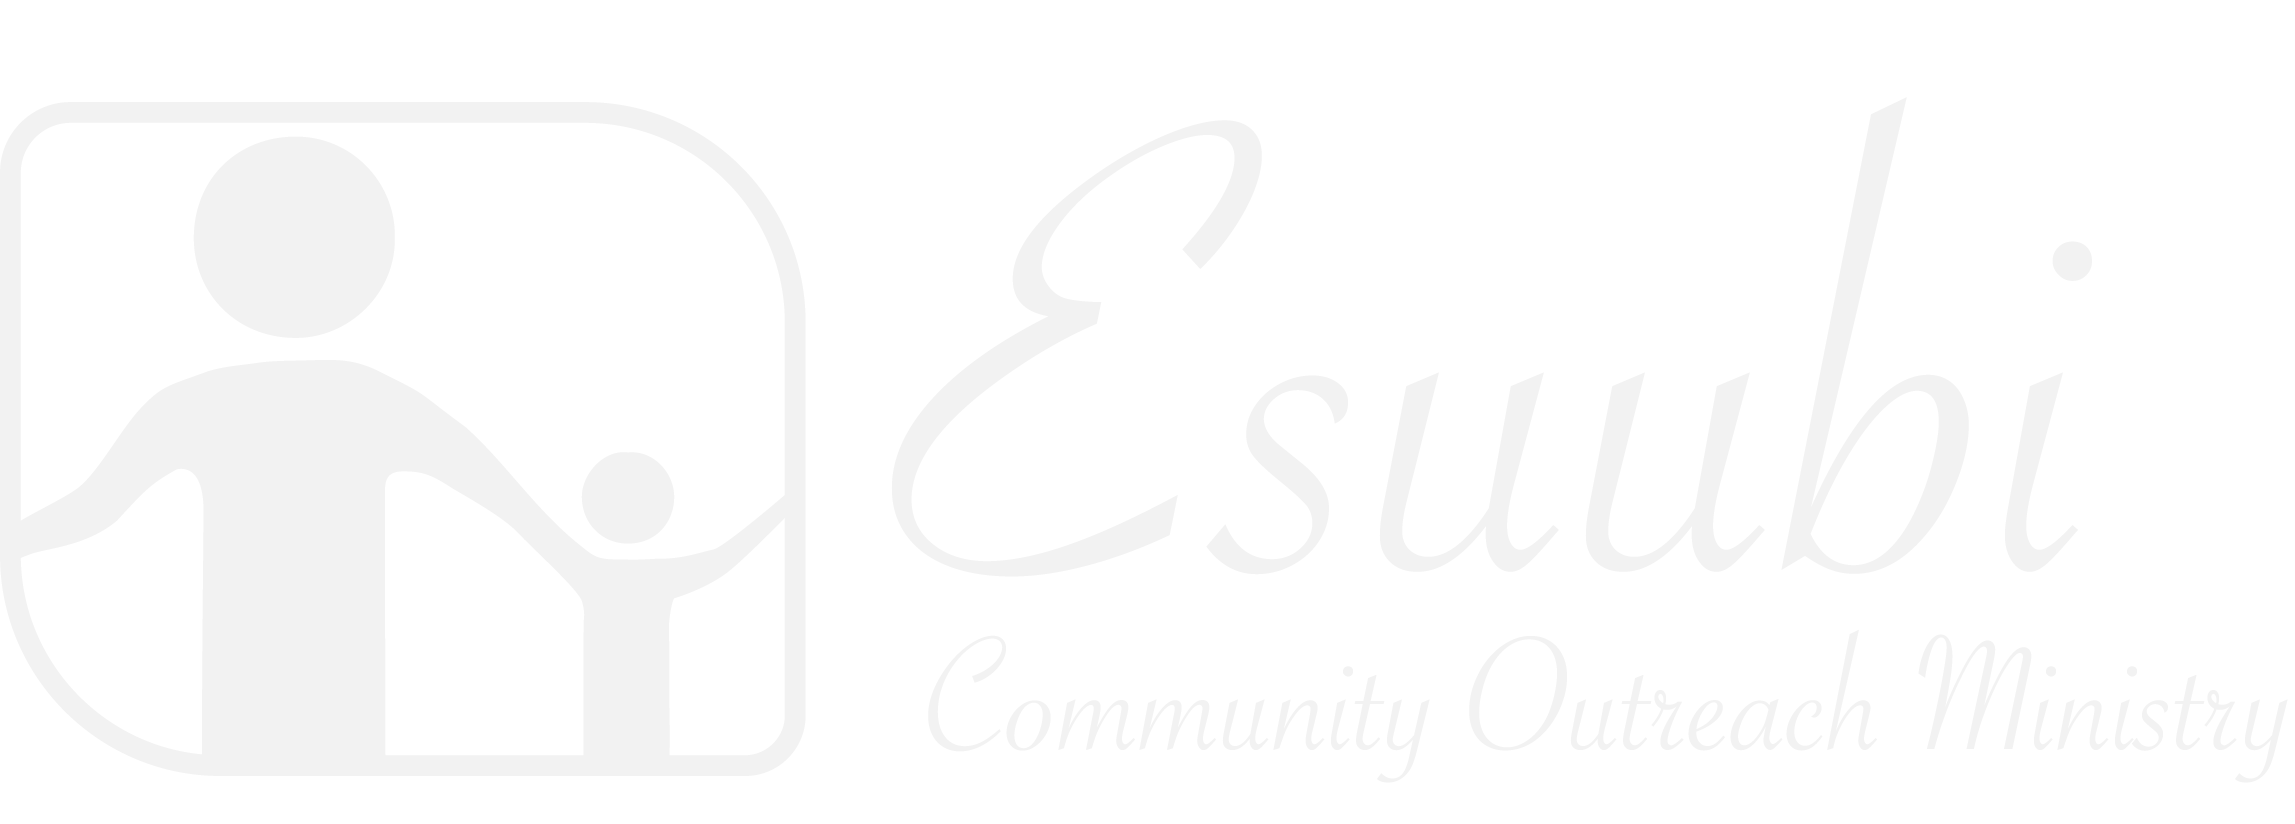 Esuubi Community Outreach Ministry